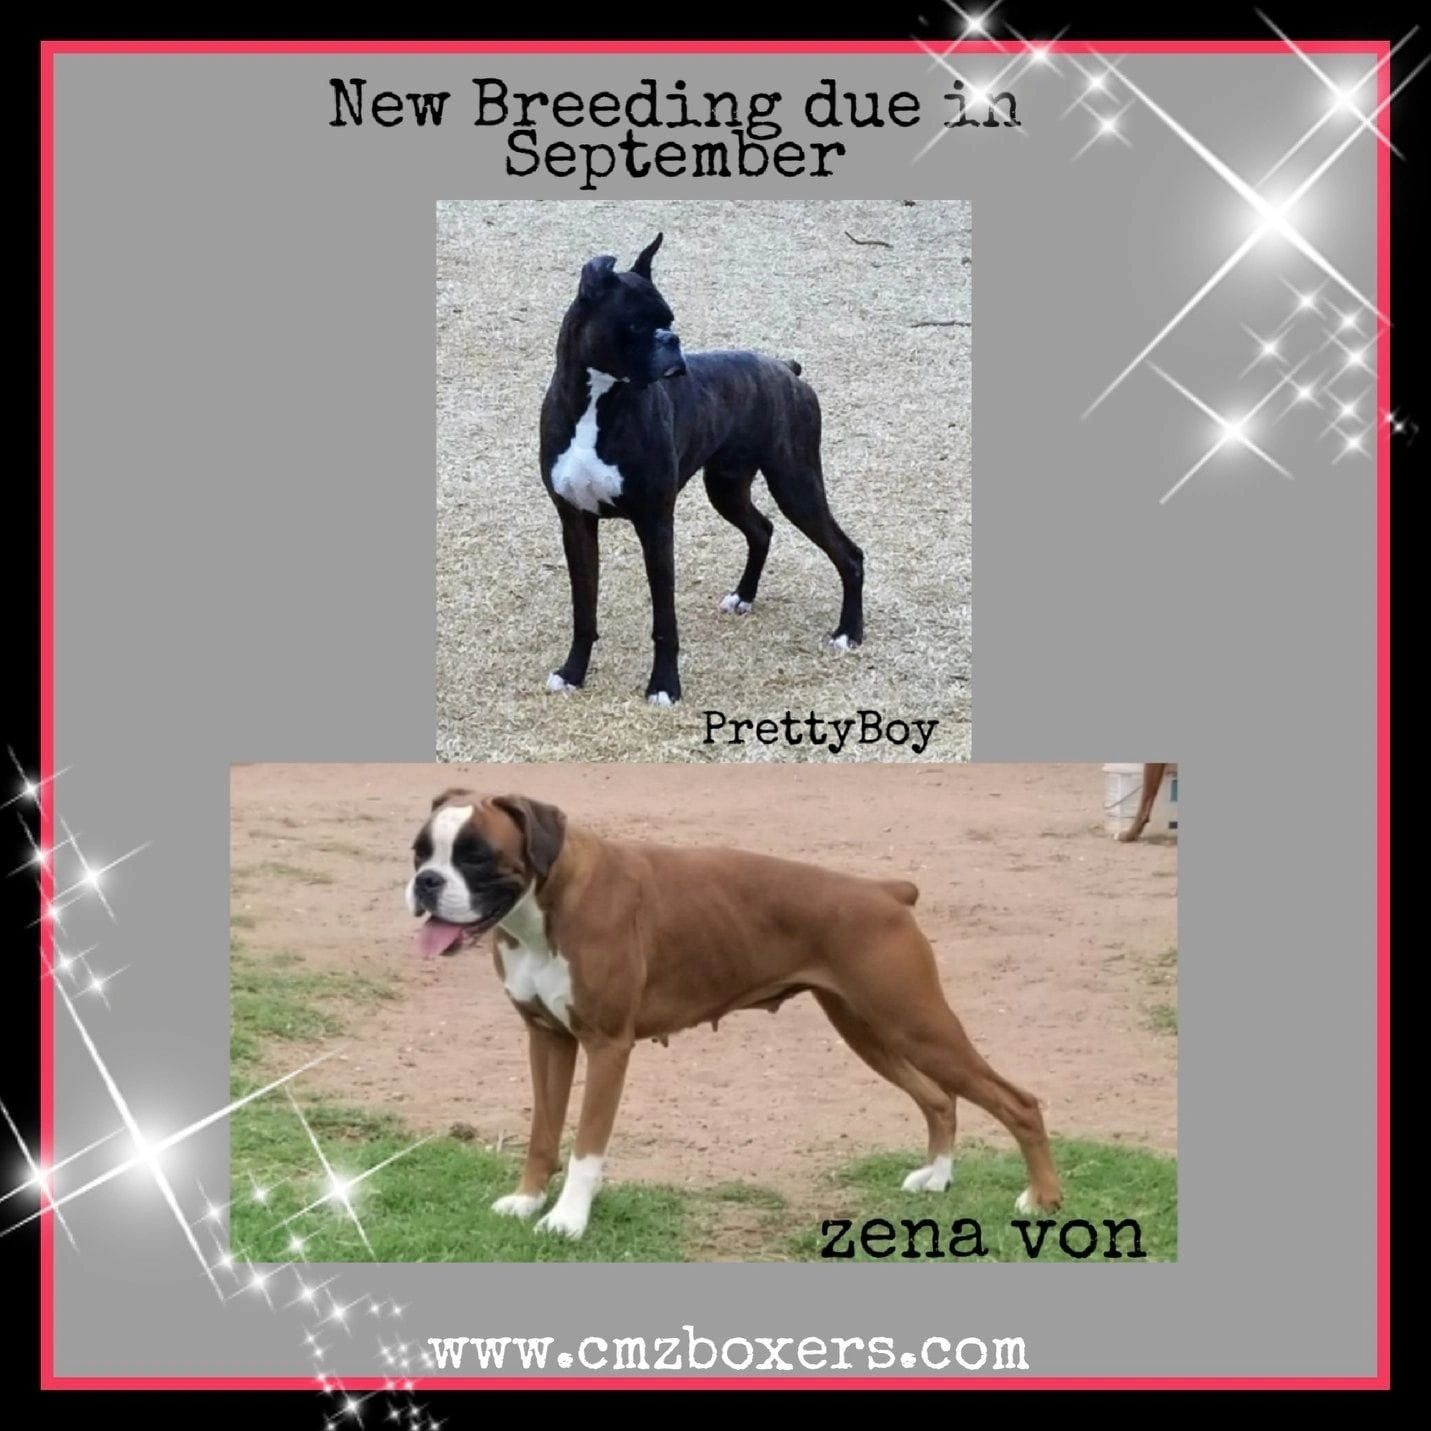 Boxer Puppies in Oklahoma - Boxer Puppies for Sale | Cmz Boxers